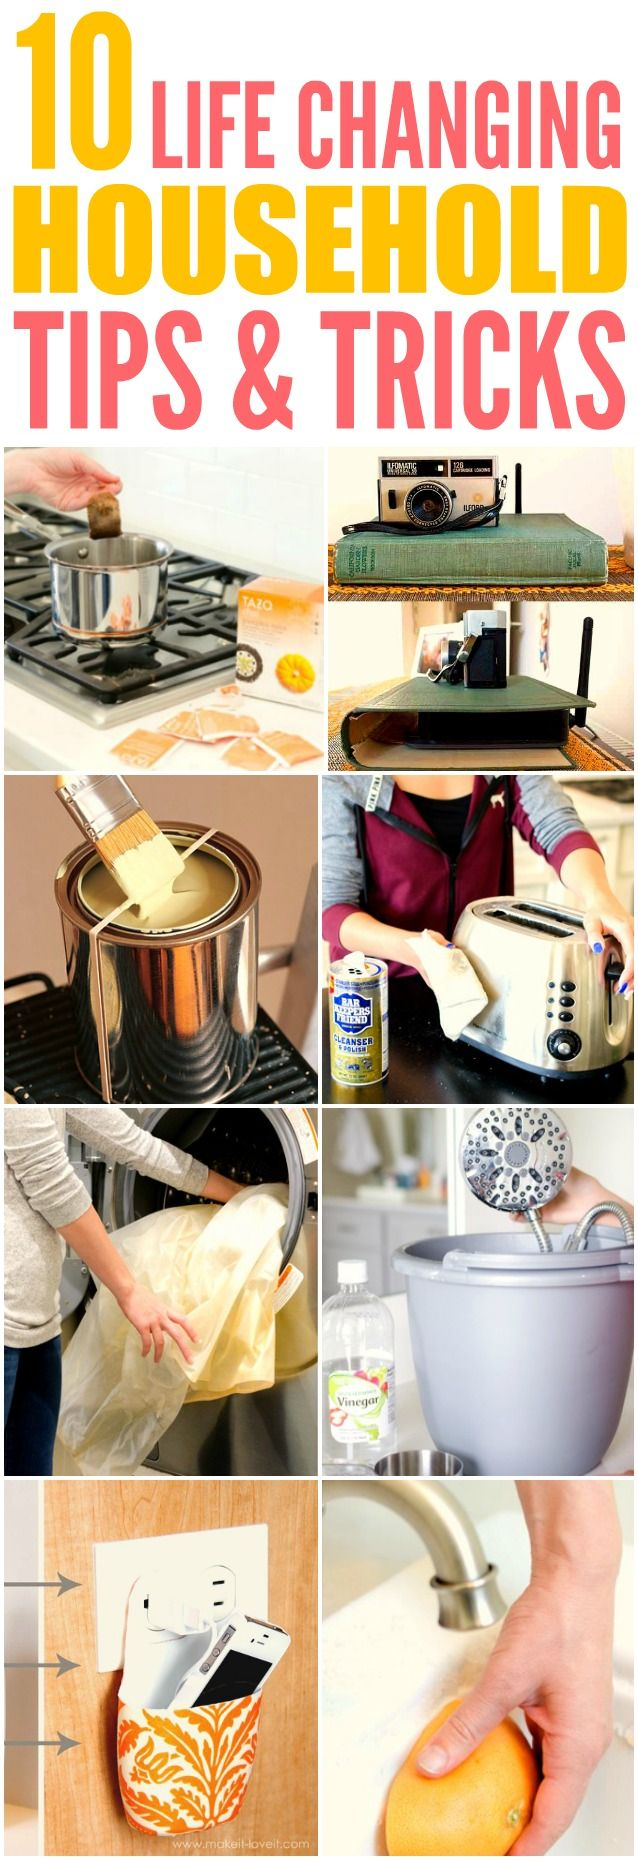 These 10 best home hacks of all time are SO GOOD! I'm so glad I found these GREAT tips! Now I have some great ideas for cleaning and organizing. Definitely pinning for later!